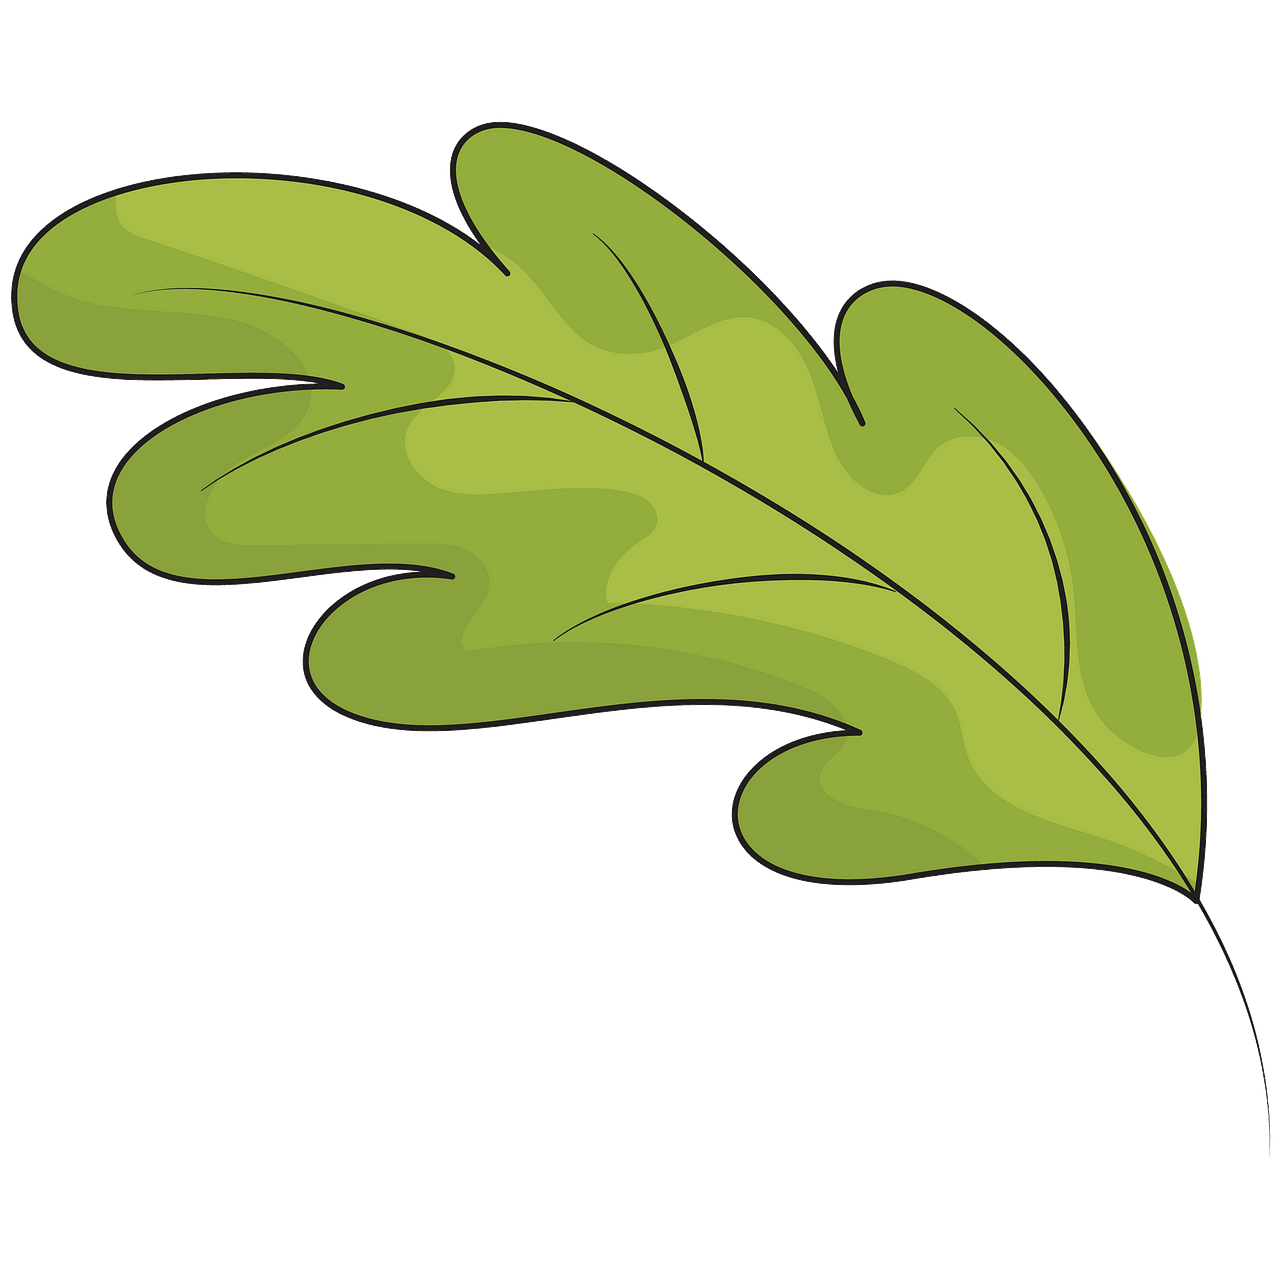 Green oak leaf clipart. Free download..